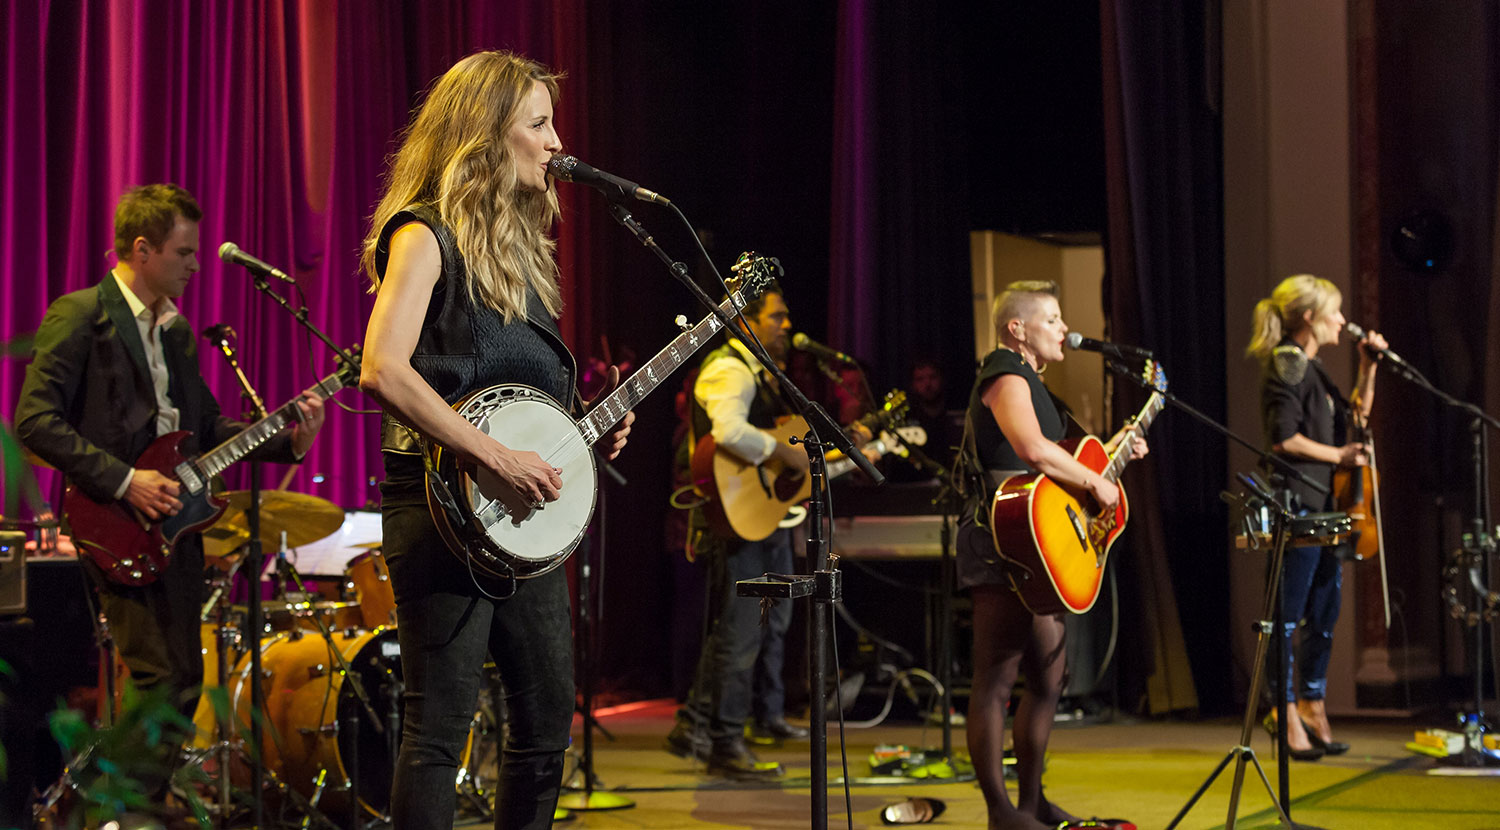 The Dixie Chicks reunite for the first time in three years to honor Mr. Rubin